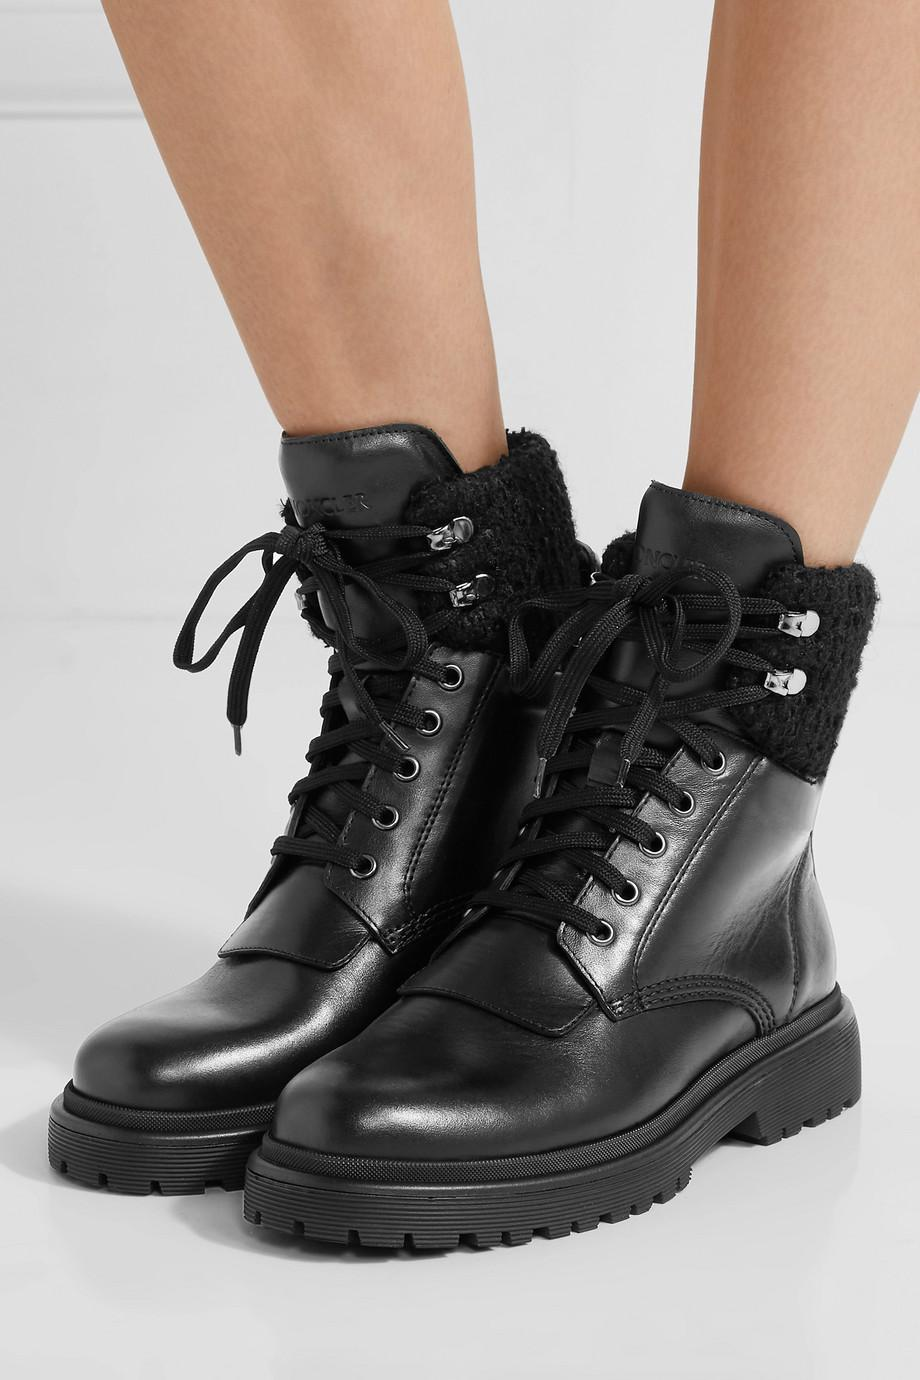 Moncler Ankle Boots Cheap With Paypal Cheap Pay With Visa Best Supplier Sale Cheap Clearance Authentic GZnN99